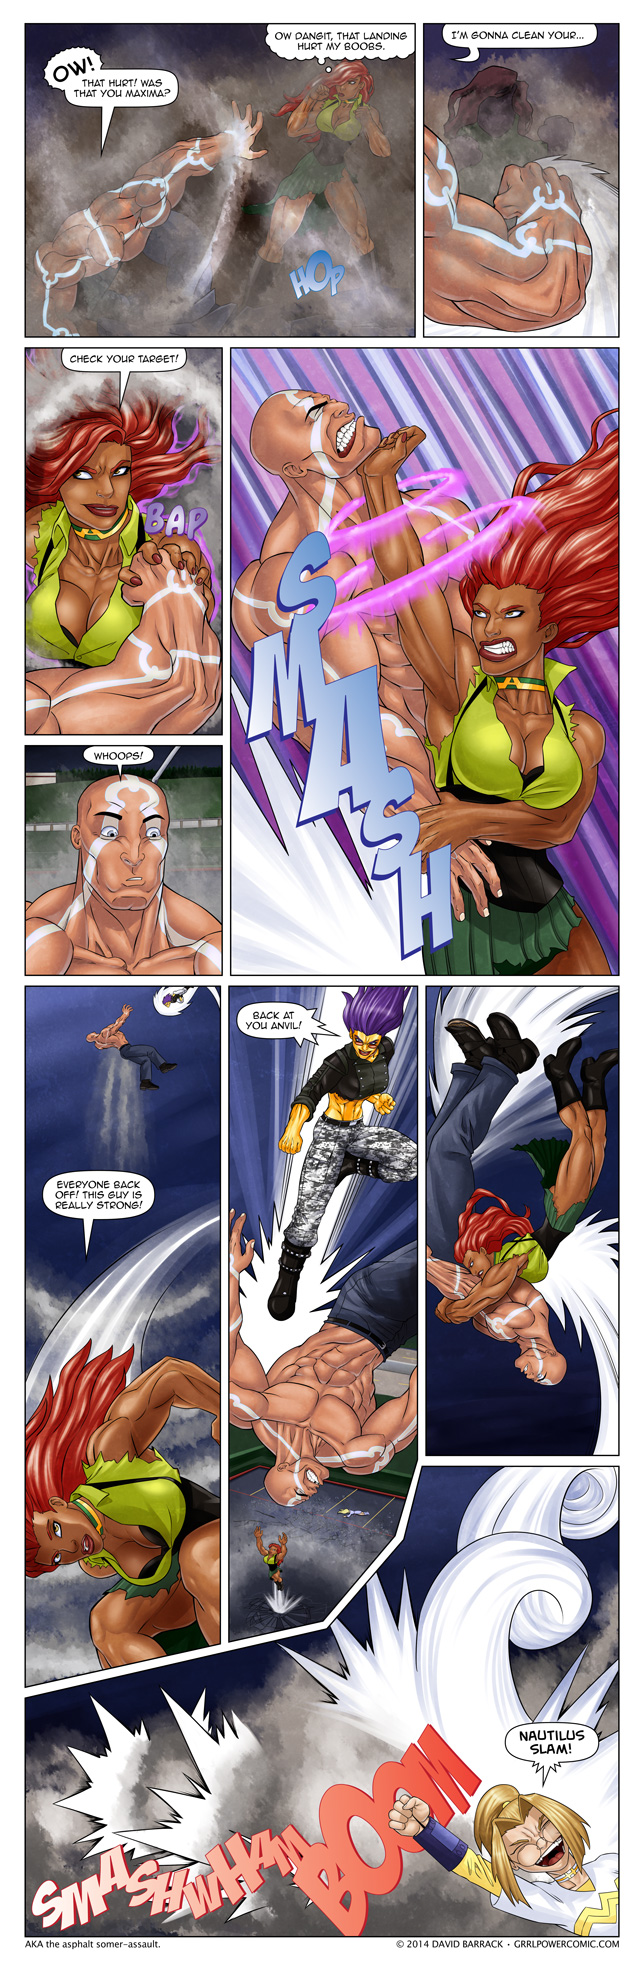 Grrl Power #255 – The ARC Wrestling Federation